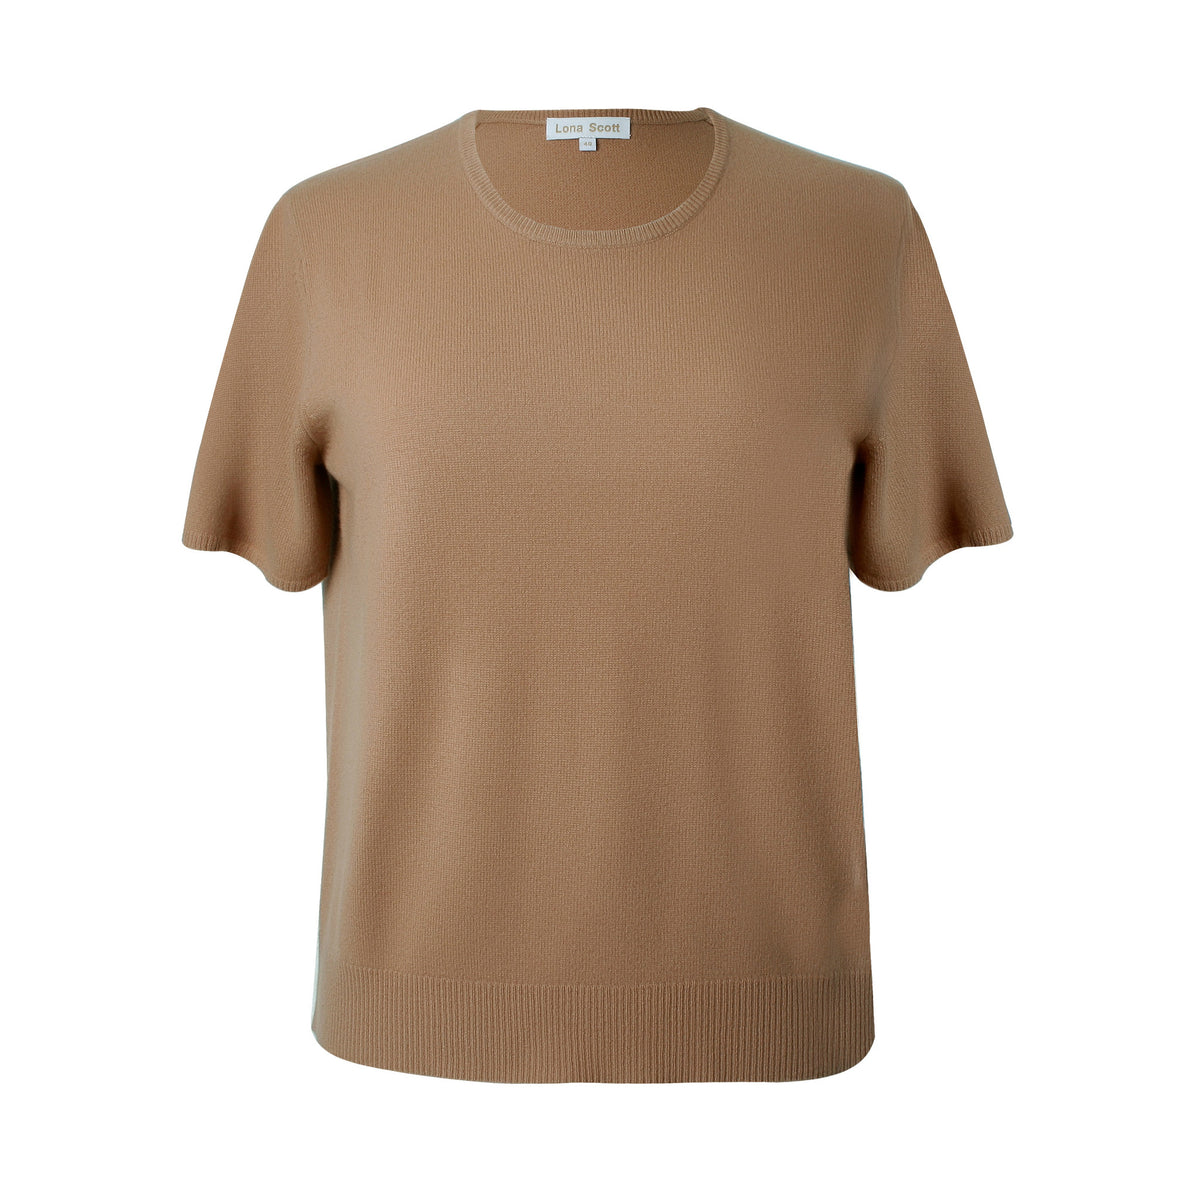 Ladies Camel Cashmere Sweater | Short Sleeve | The Cashmere Choice London